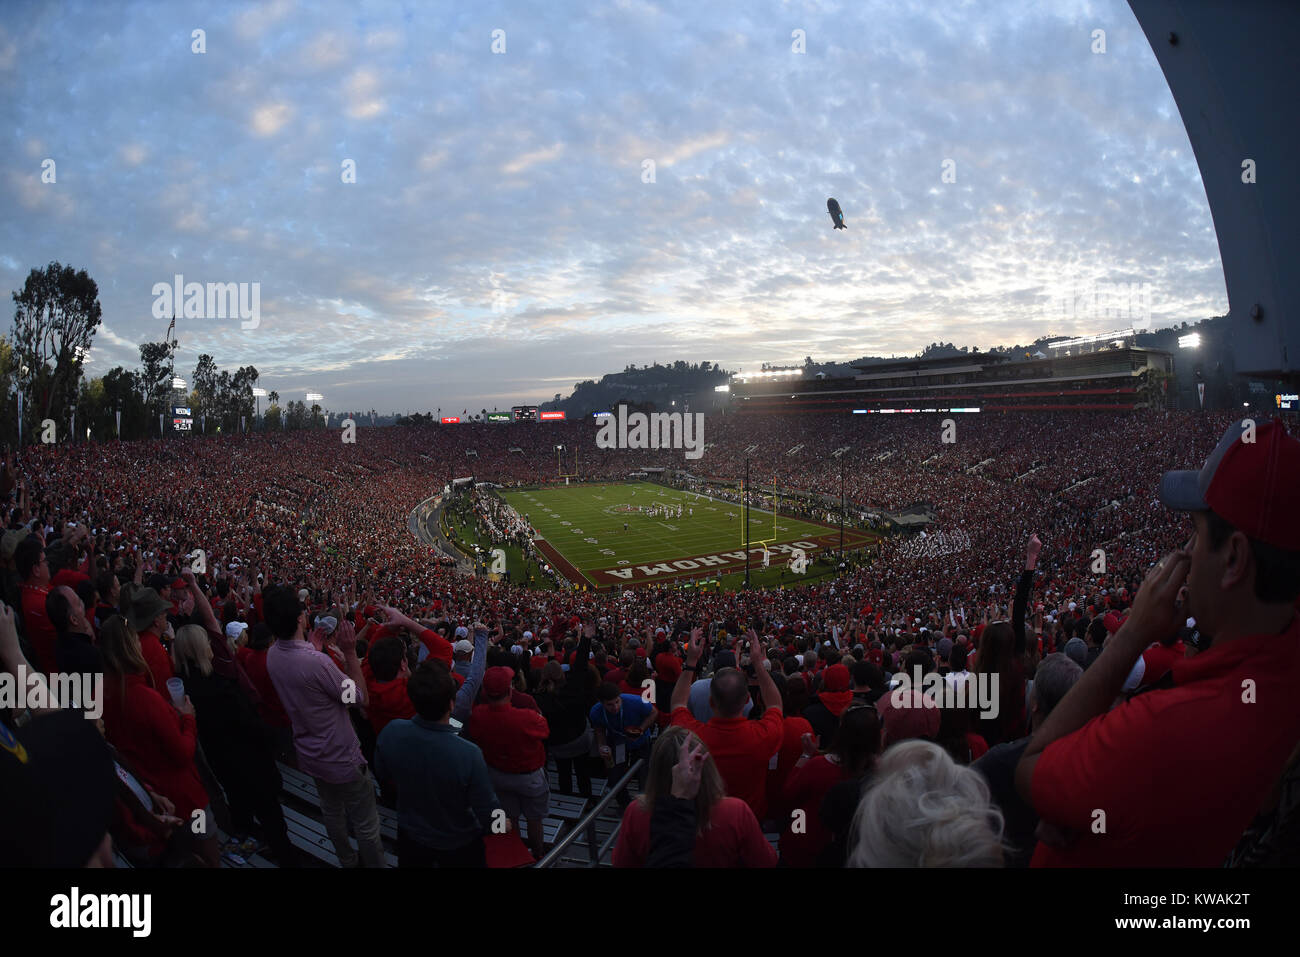 Pasadena, California, USA. 01st Jan, 2018. A wide angle view of the stadium during the 2018 Rose Bowl semi-final Stock Photo